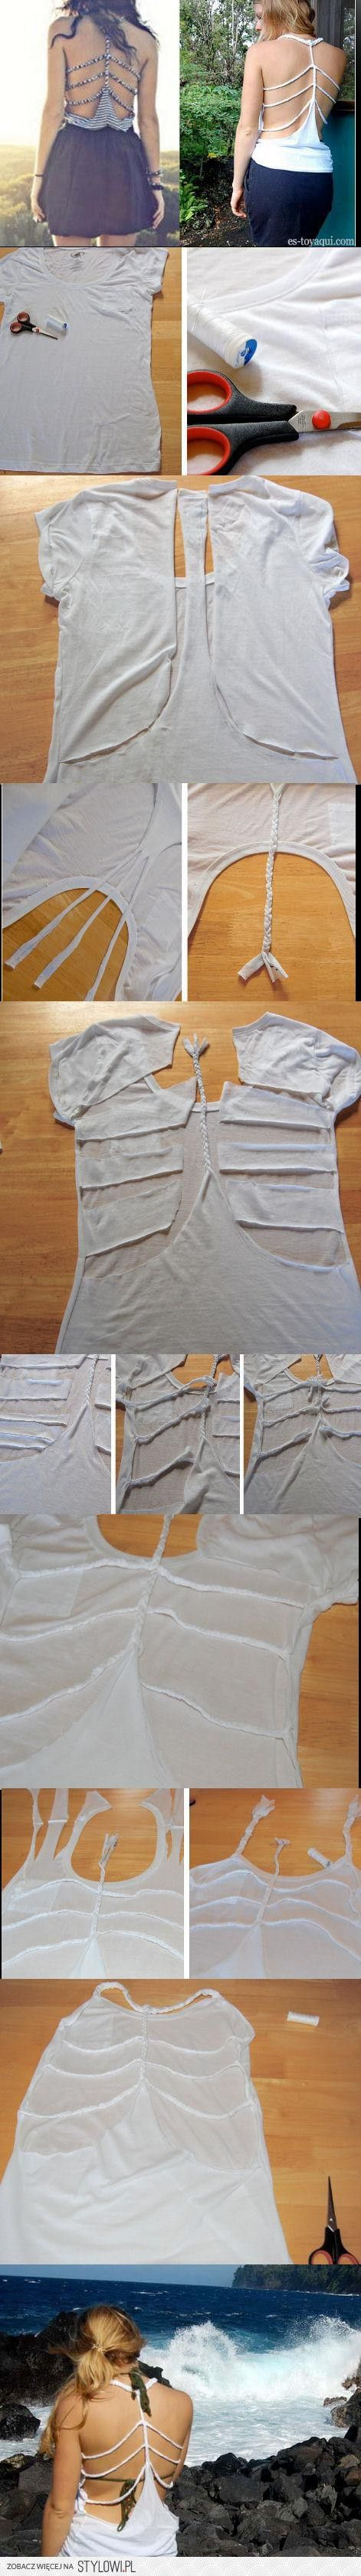 I did one of the DIY shirts on here and it turned out great! Cant wait to try this one! @ DIY Home Ideas